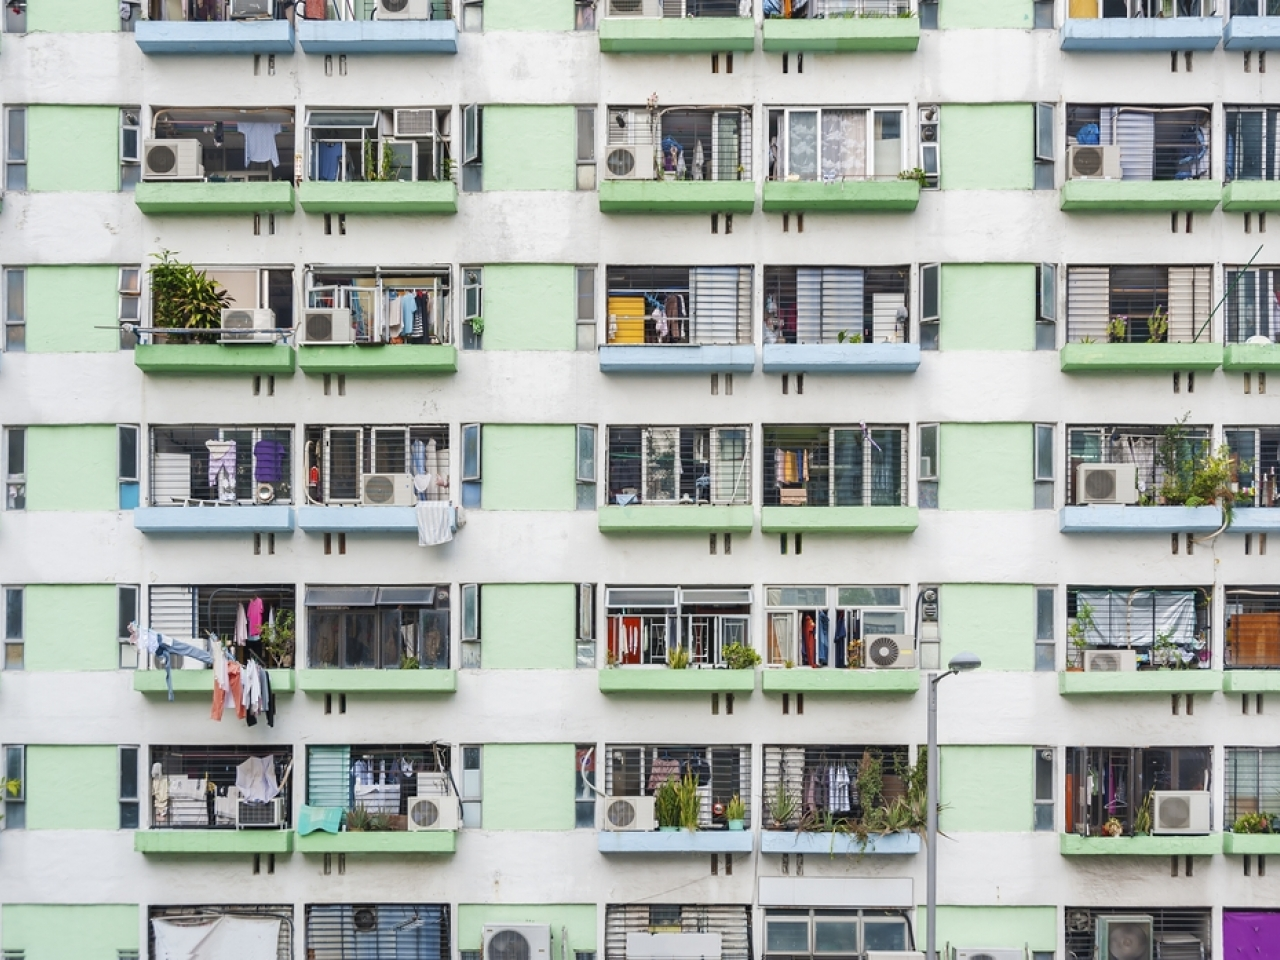 Lai Kin-kwok from the Subdivided Flats Concerning Platform told RTHK he was more optimistic that the process of building public flats could be sped up now that the government faced less opposition. Photo: Shutterstock